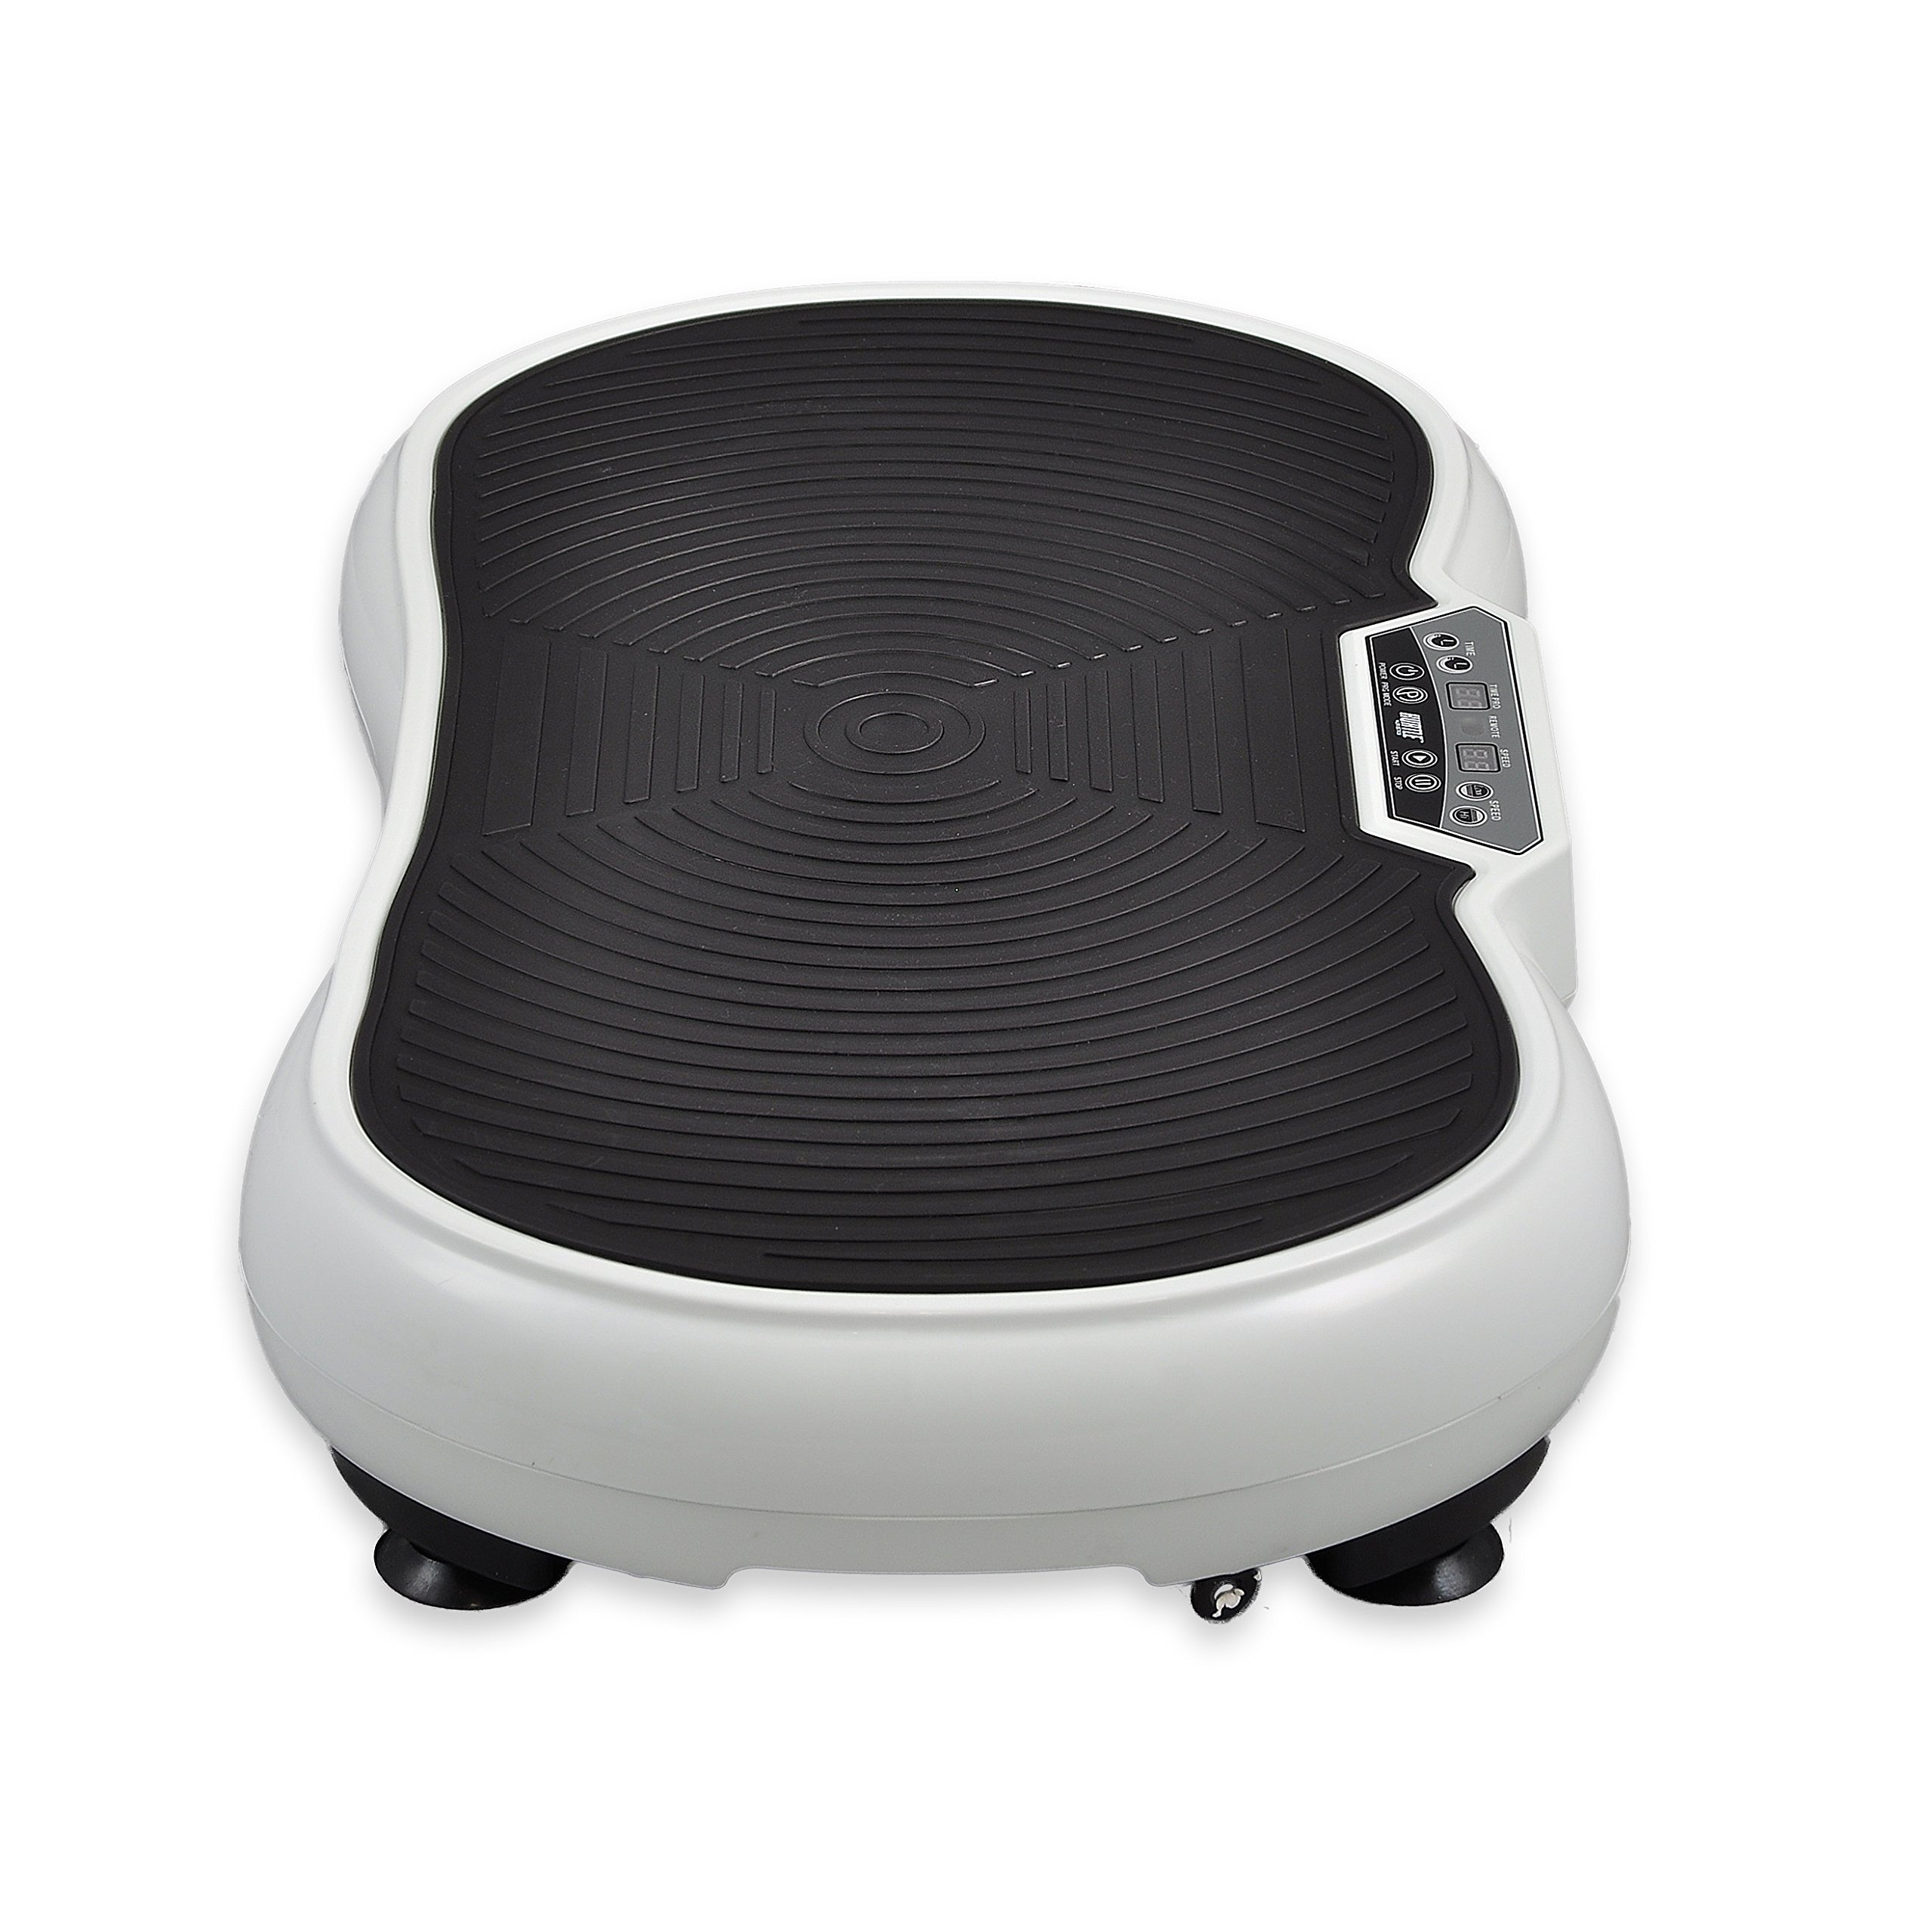 Hurtle Fitness Vibration Platform Workout Machine | Exercise Equipment For Home | Vibration Plate | Balance Your Weight Workout Equipment Includes, Remote Control & Balance Straps Included (HURVBTR30) by Hurtle (Image #2)